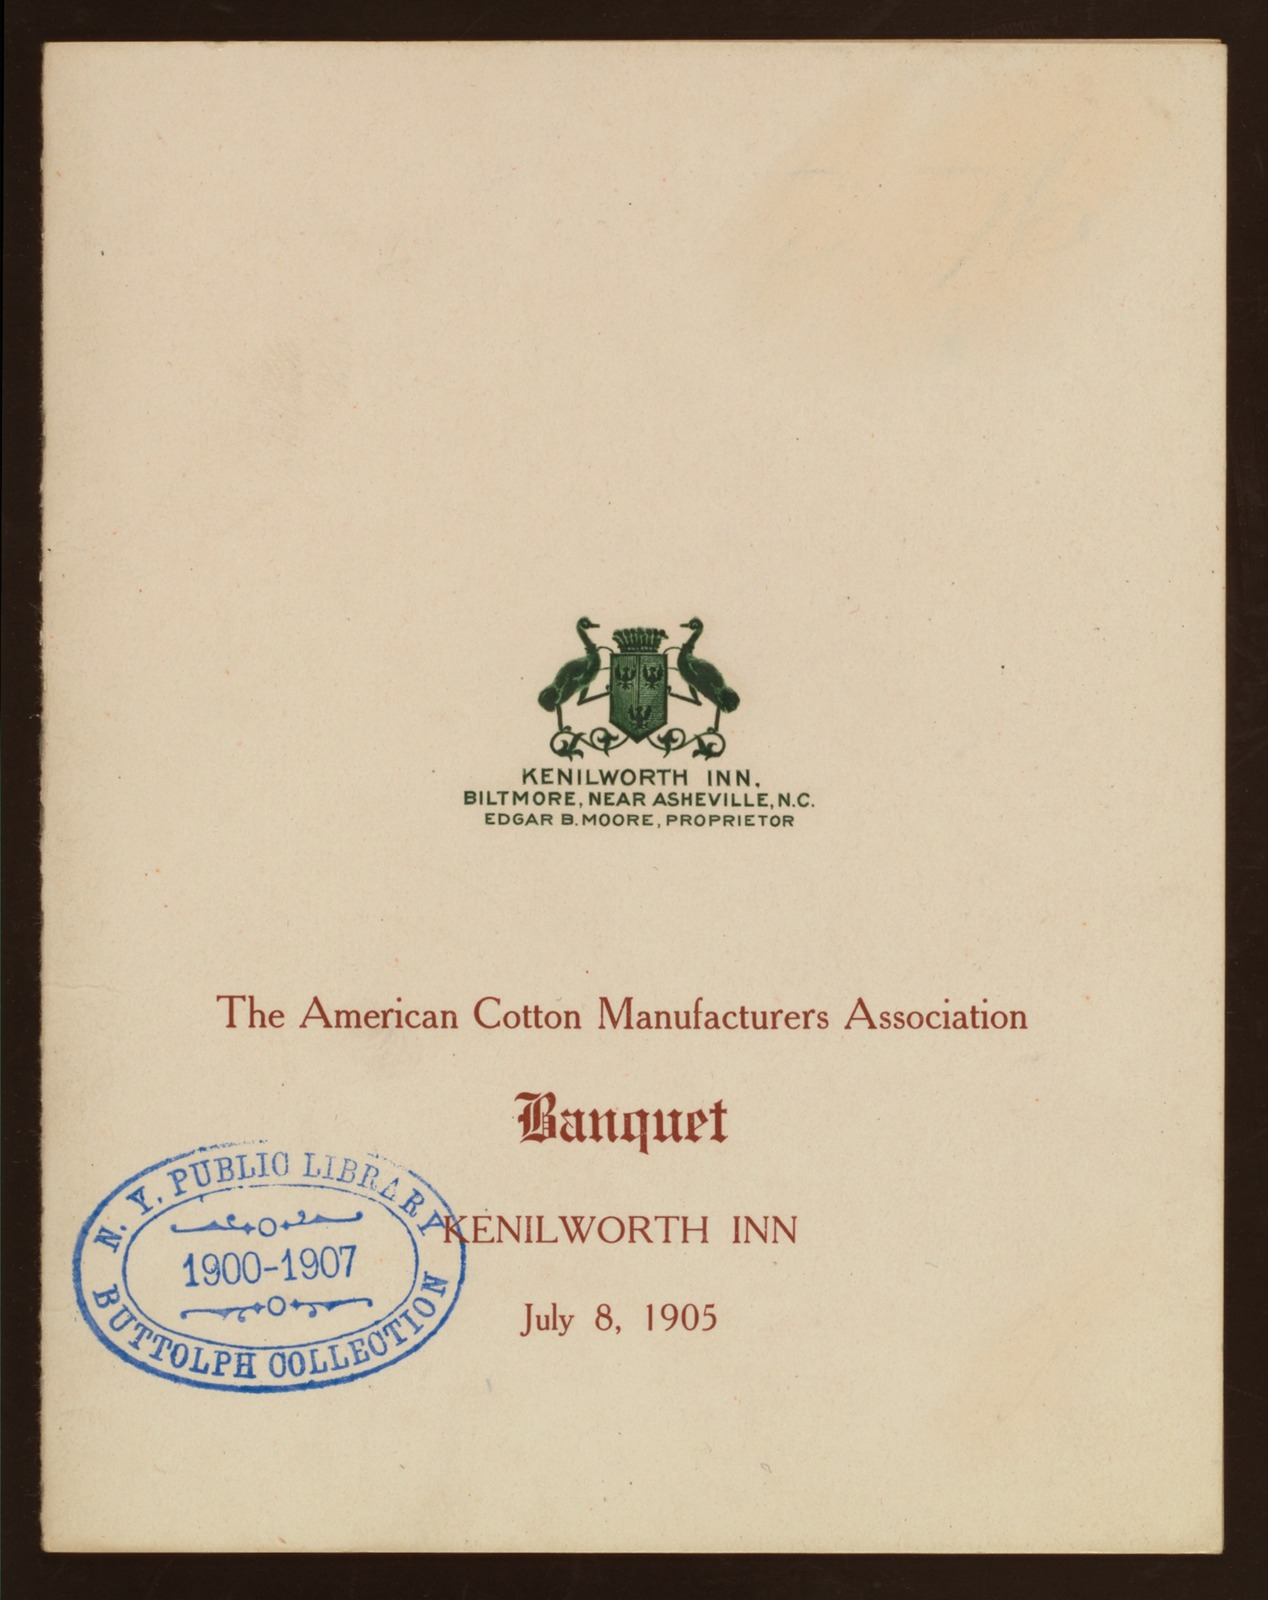 "BANQUET [held by] AMERICAN COTTON MANUFACTURERS ASOCIATION [at] ""KENILWORTH INN, N.C."" (HOTEL;)"